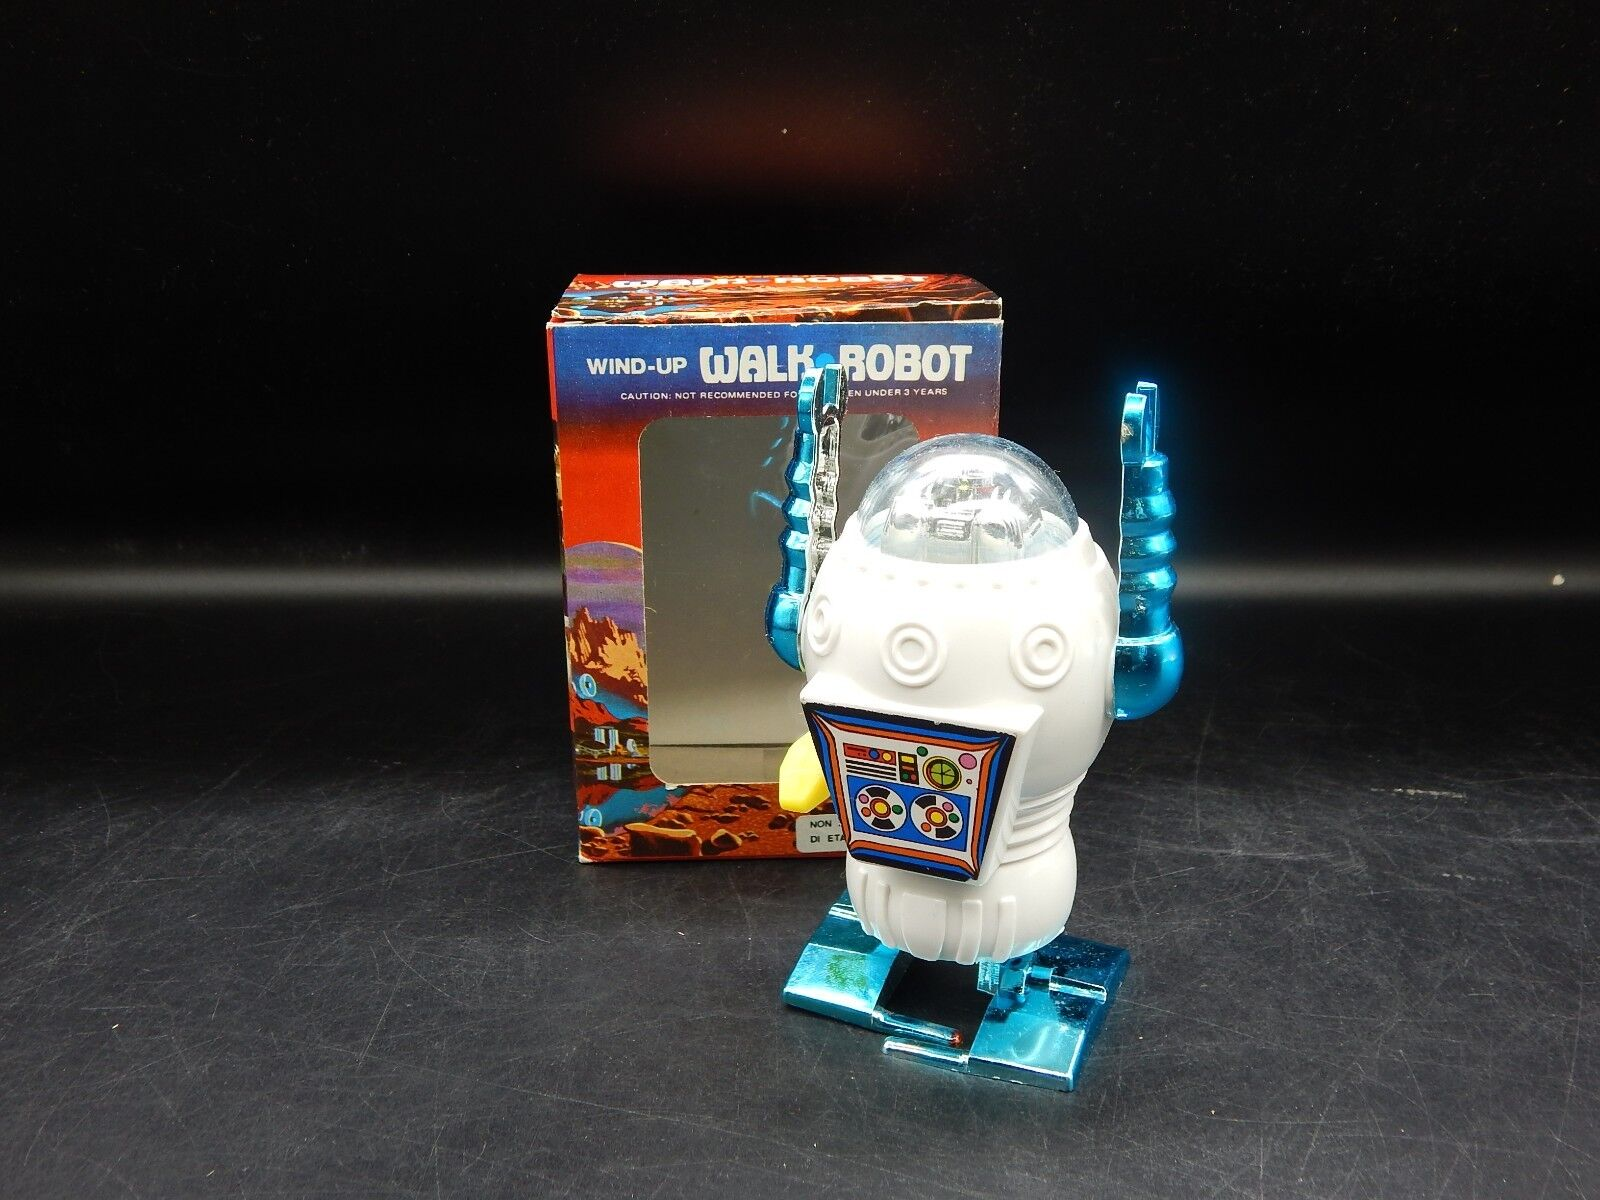 Original vintage windup WALK ROBOT giocattolo cifra MIB plastic windup original scatola